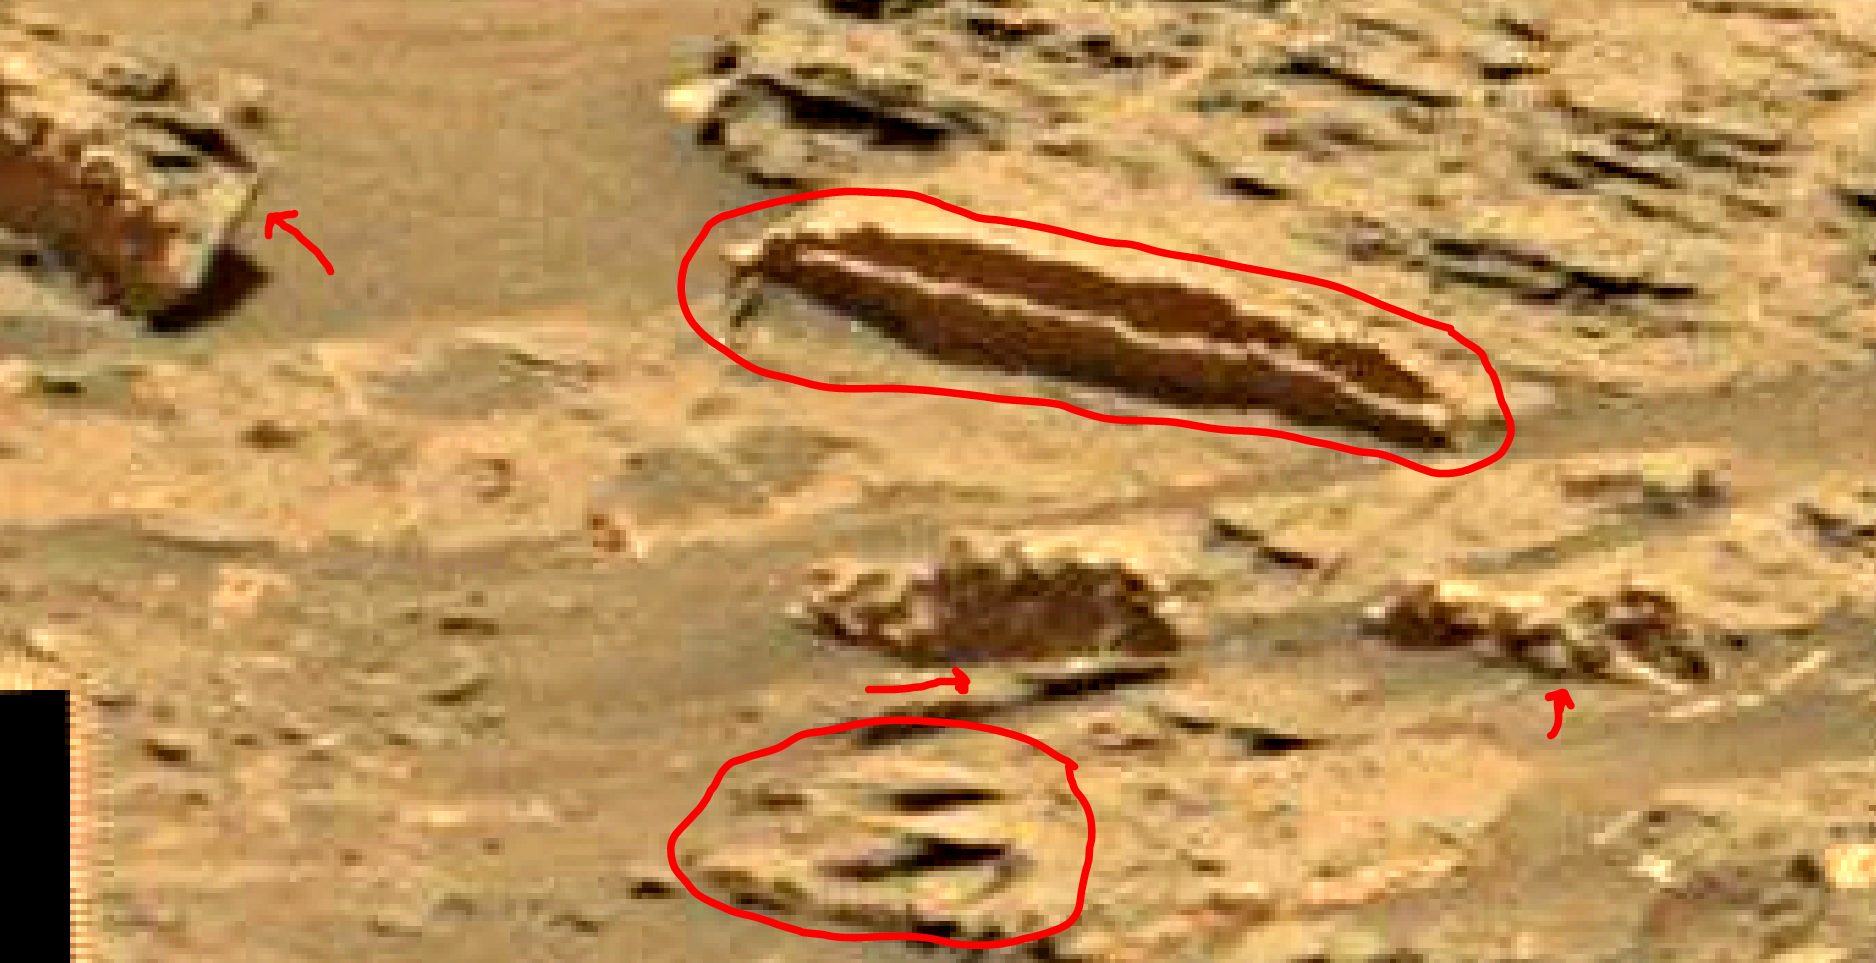 mars sol 1353 anomaly-artifacts 13a was life on mars